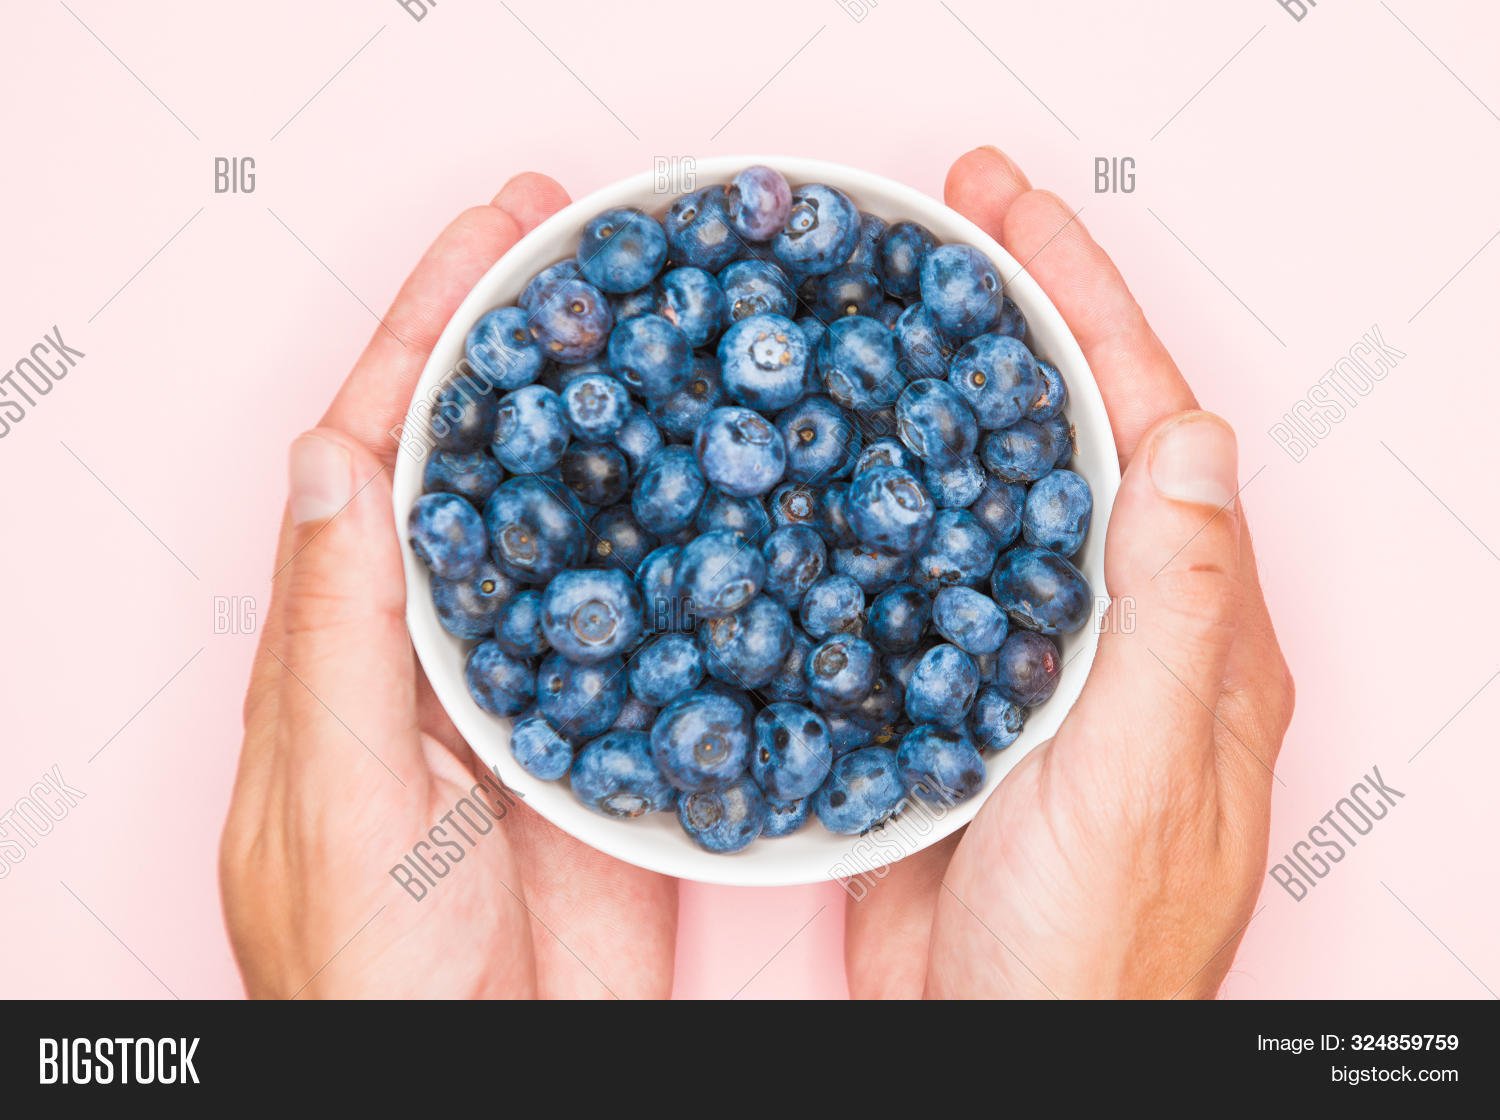 agriculture,antioxidant,background,berry,bilberry,blackberry,bluberry,blue,blueberry,closeup,crop,delicious,dessert,diet,dieting,eat,eating,food,forrest,fresh,freshness,fruit,green,group,grow,health,healthy,ingredient,juicy,macro,medicine,natural,nature,nobody,nutrition,organic,overhead,plant,raw,ripe,snack,superfood,sweet,tasty,top,vegetarian,view,white,whortleberry